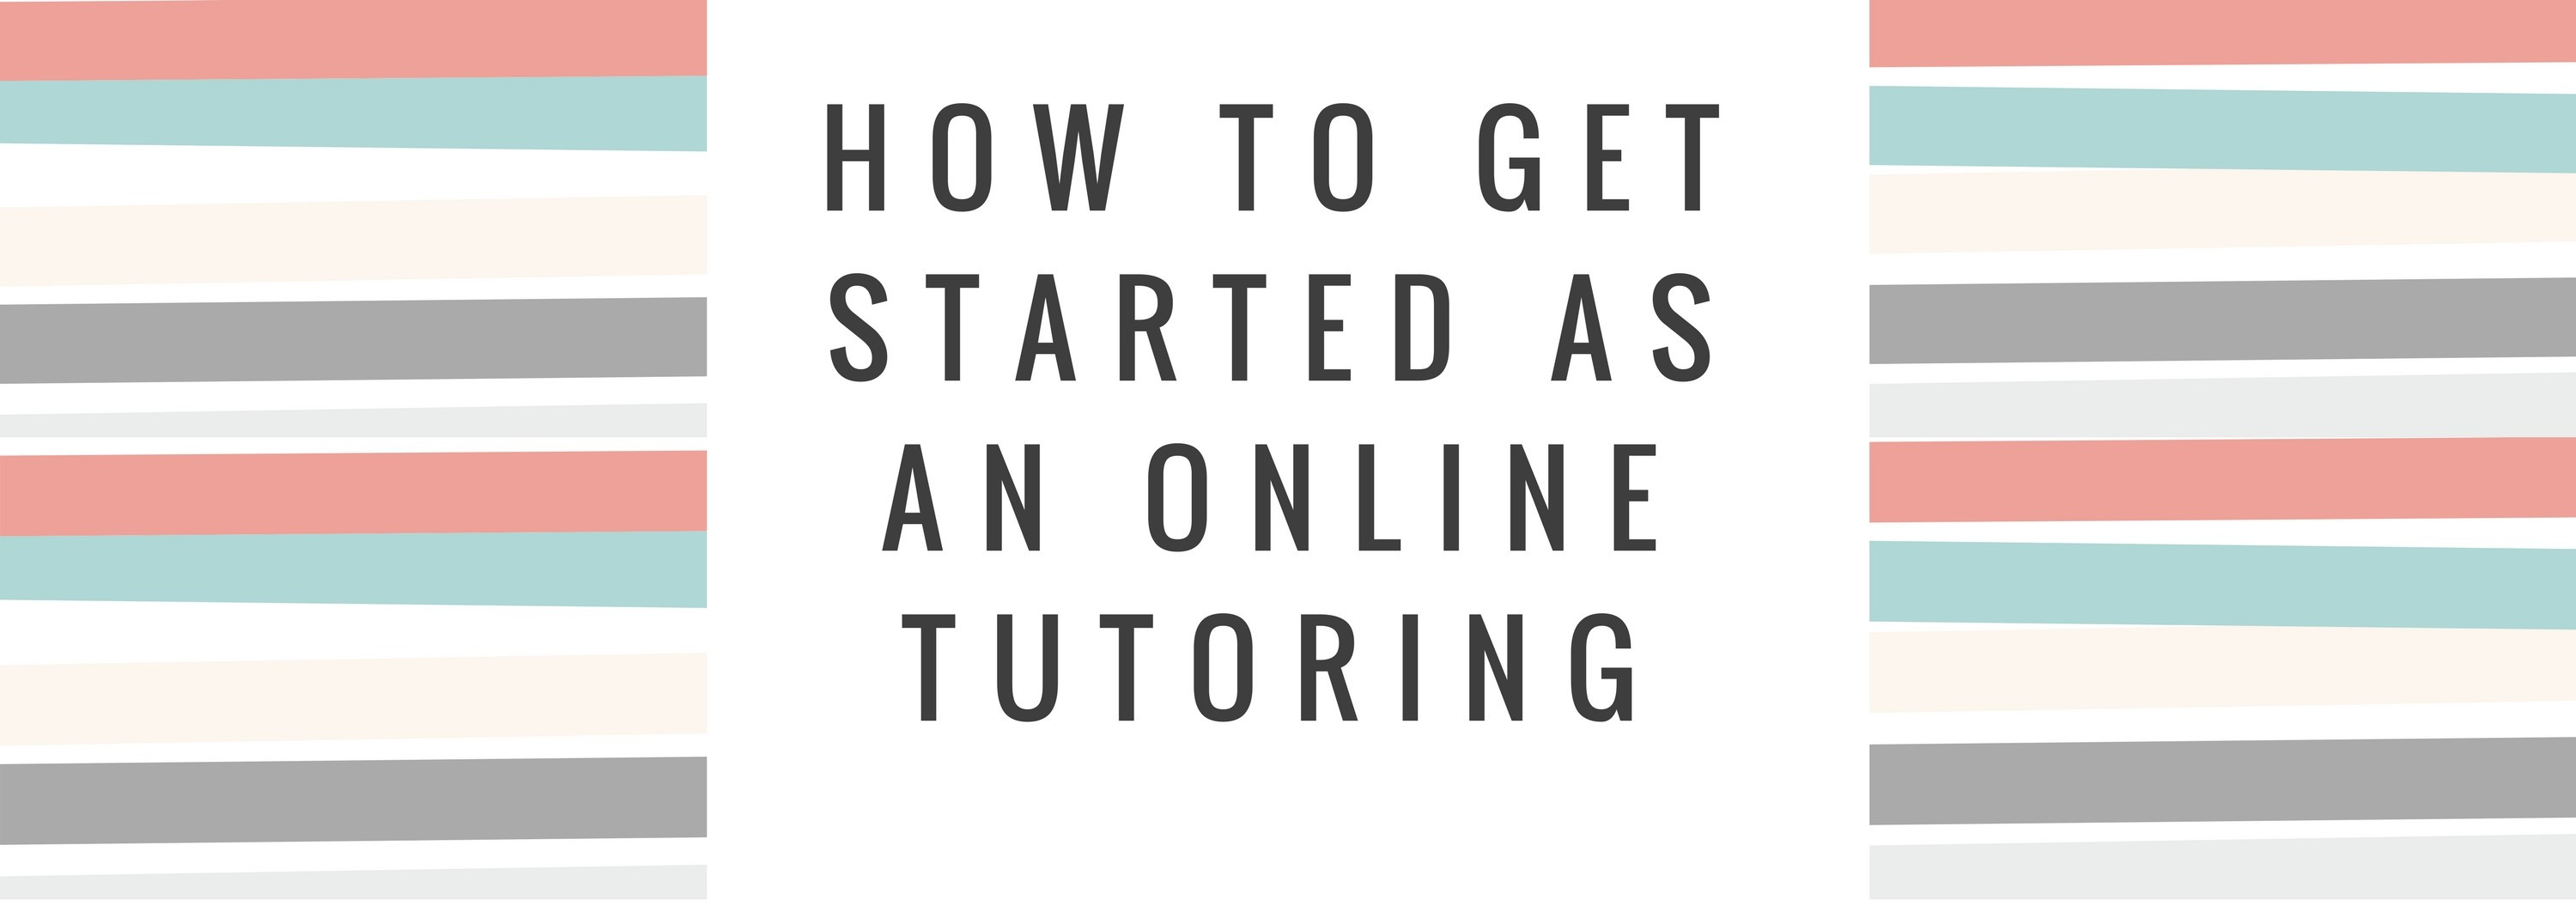 How to get started as an Online Tutoring